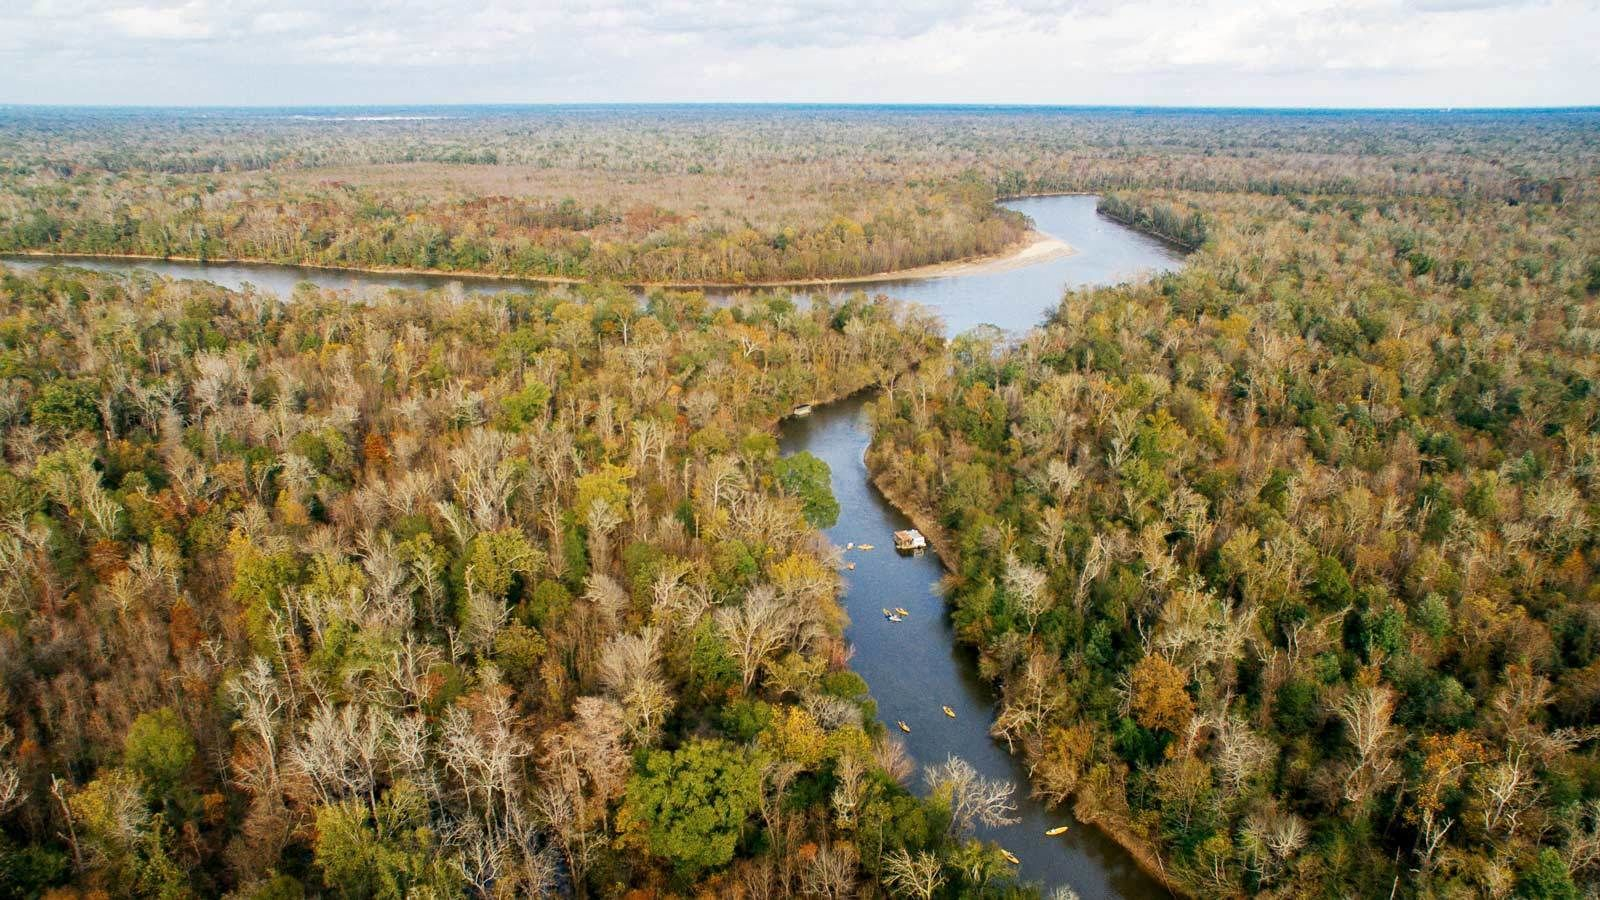 Aerial views of the Honey Island Kayak Swamp Tours